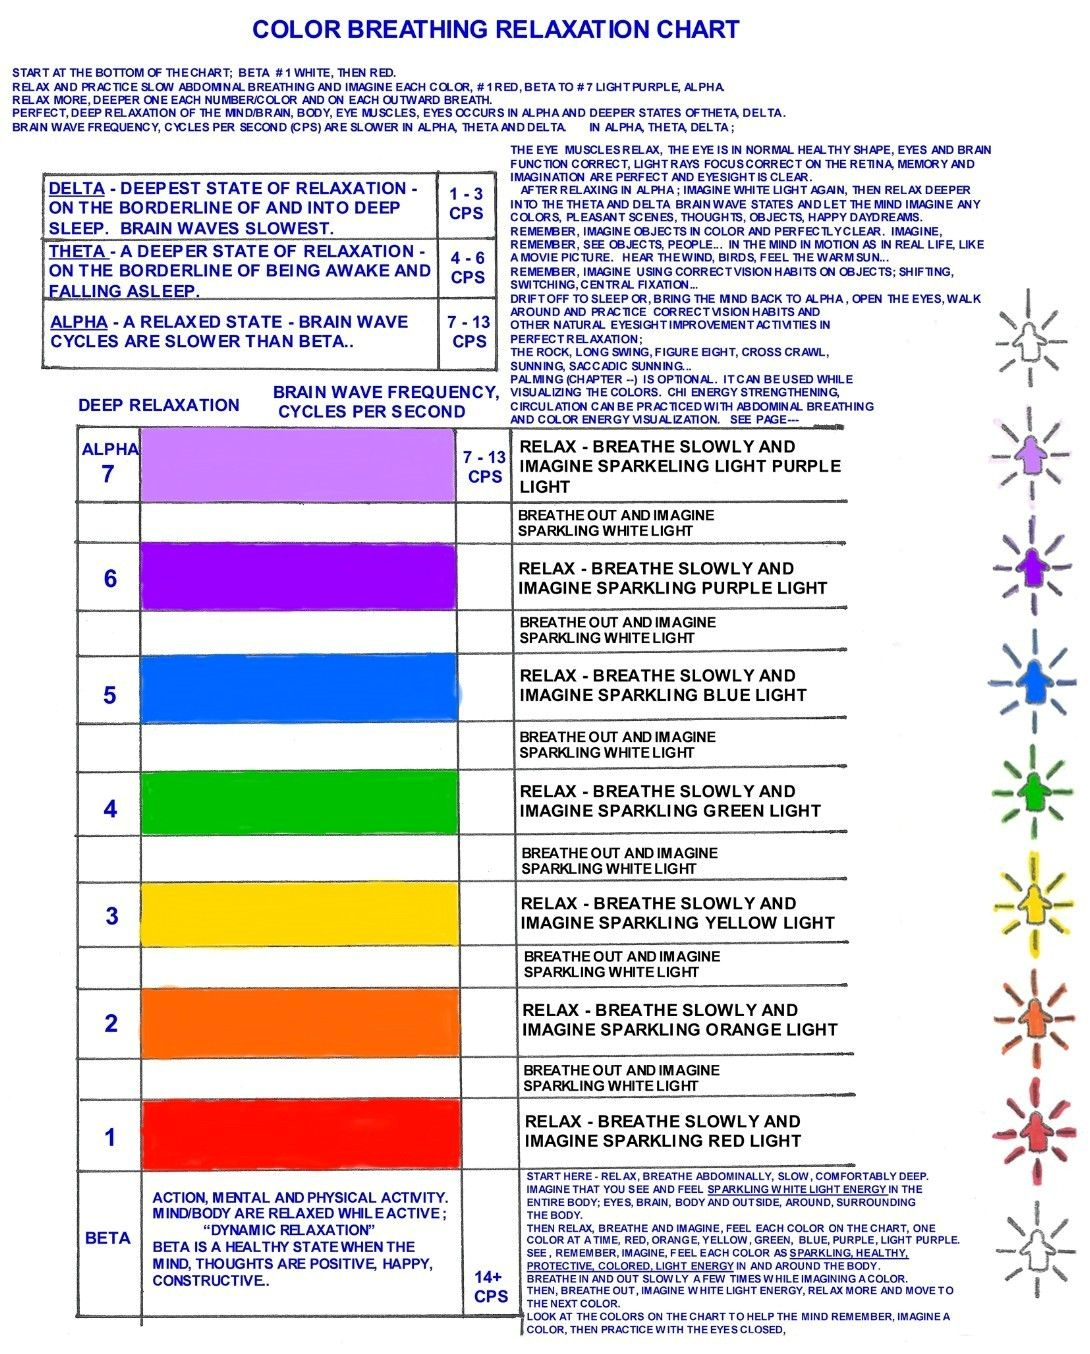 Color breathing relaxation chart colorize your life pinterest explore chart meditation and more geenschuldenfo Choice Image